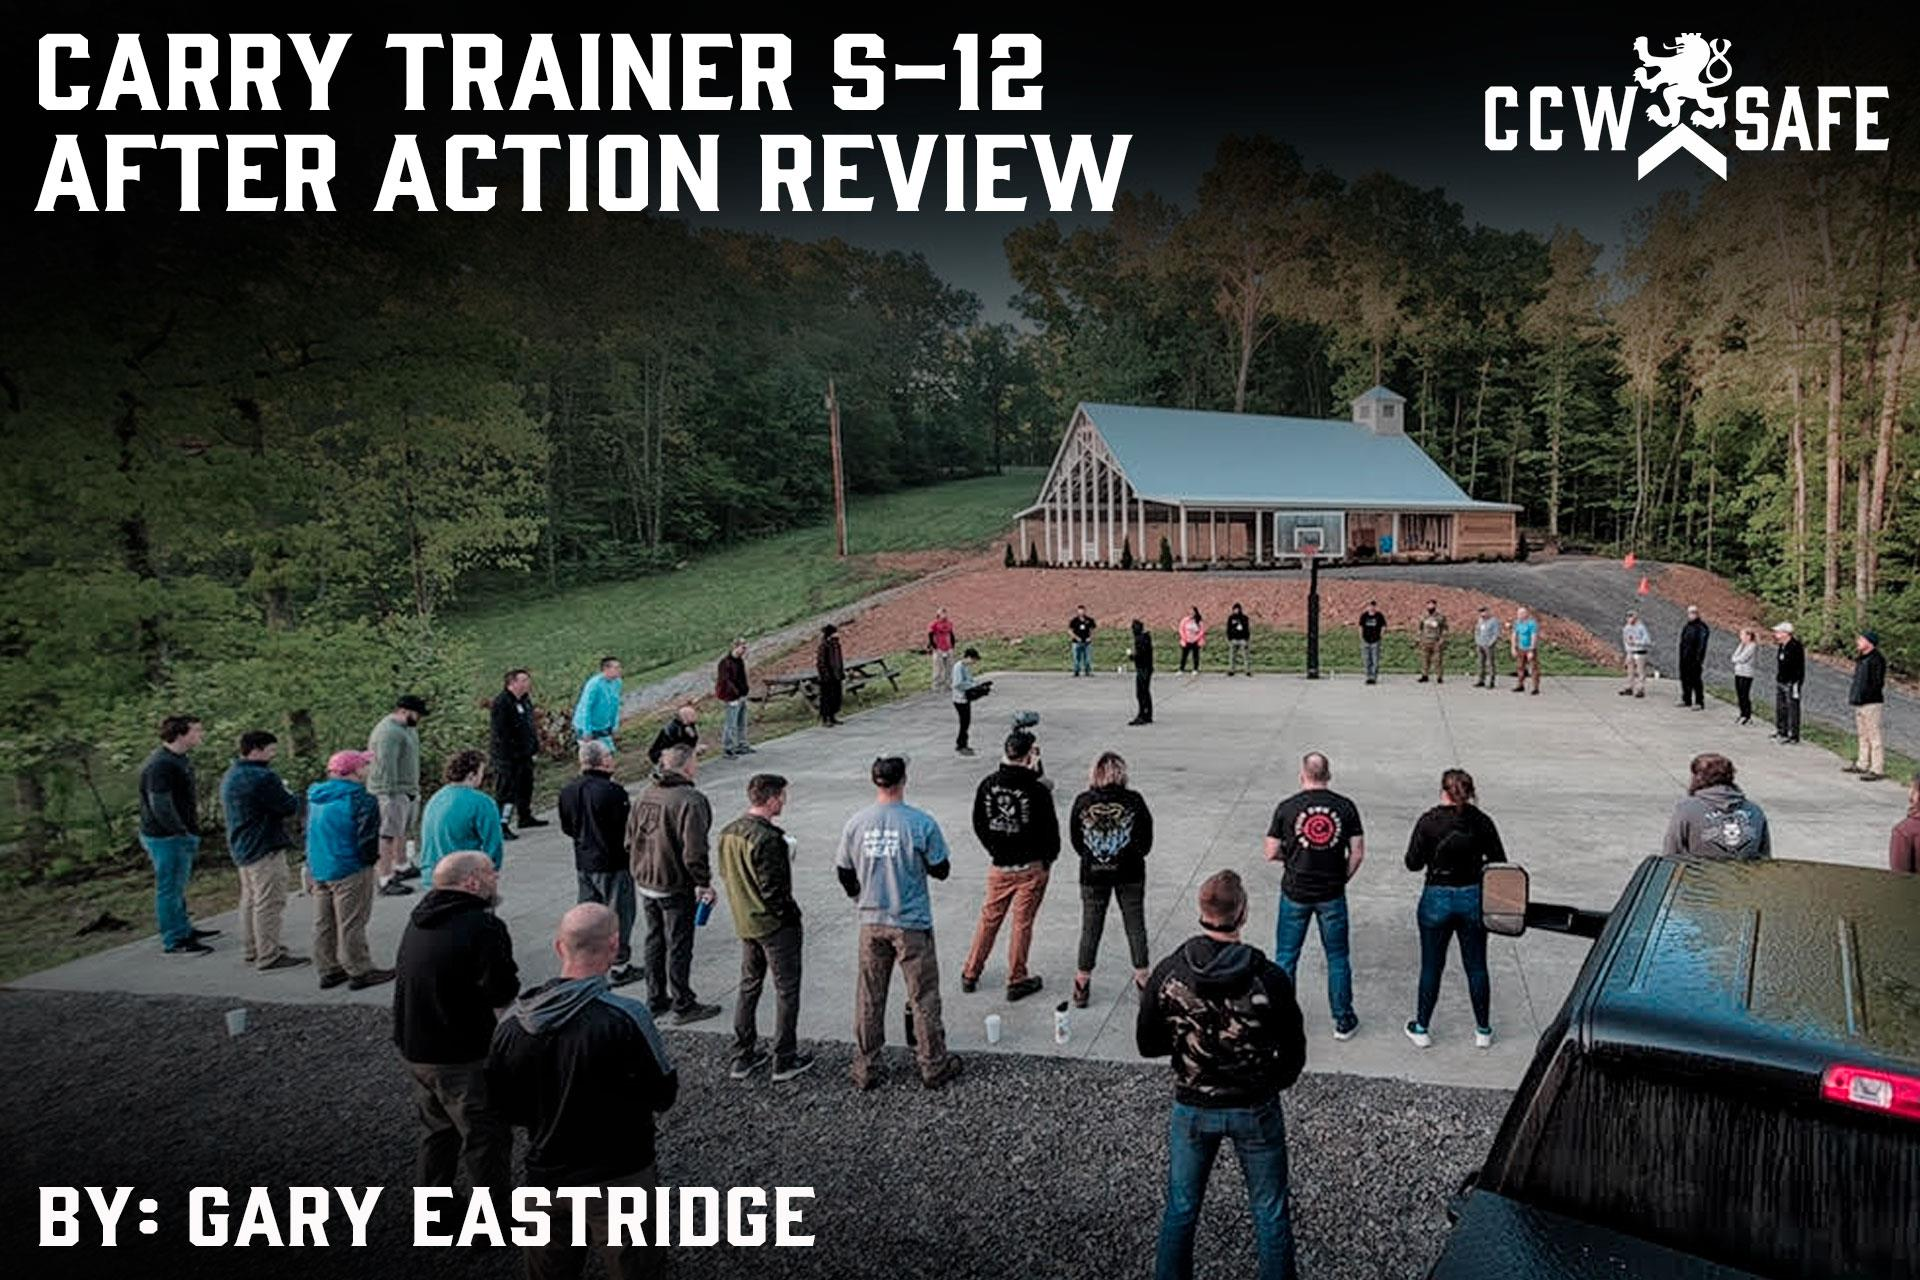 Carry Trainer S-12 After Action Review